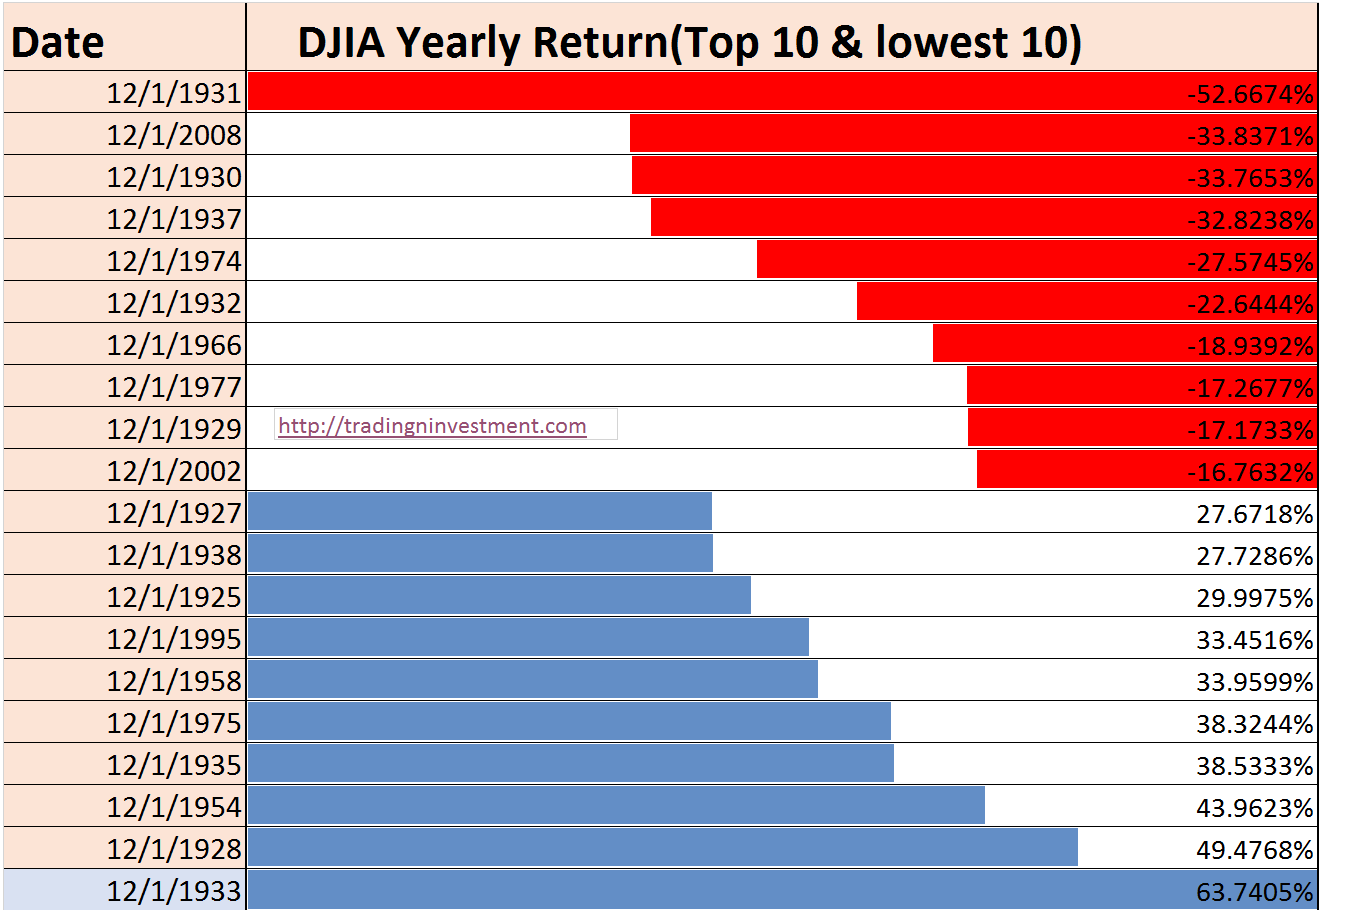 DOW's Top 10 and Lowest 10 Years Return